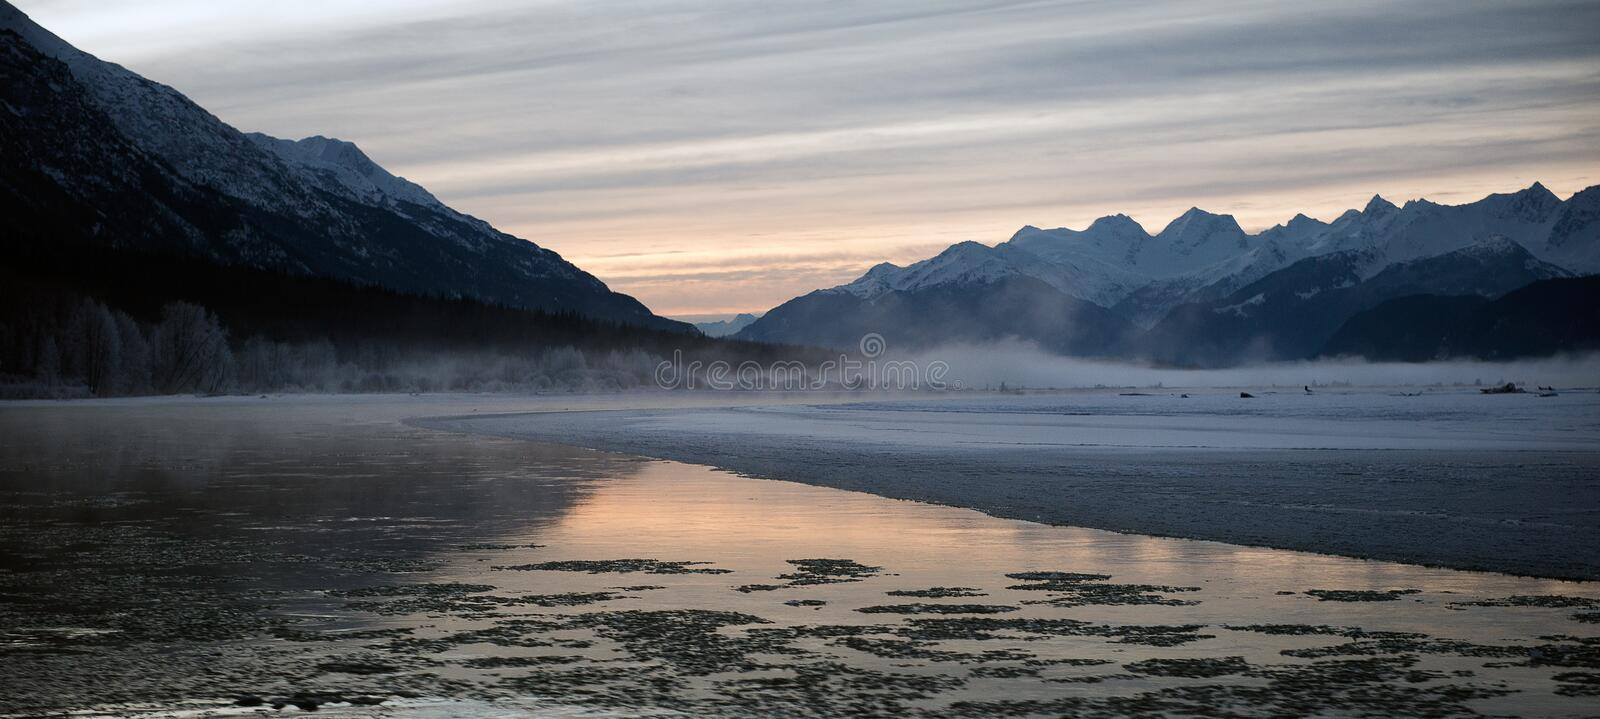 Snowcovered Mountains in Alaska. Chilkat State Park. Chilkat river. HAINES. Alaska. USA stock images